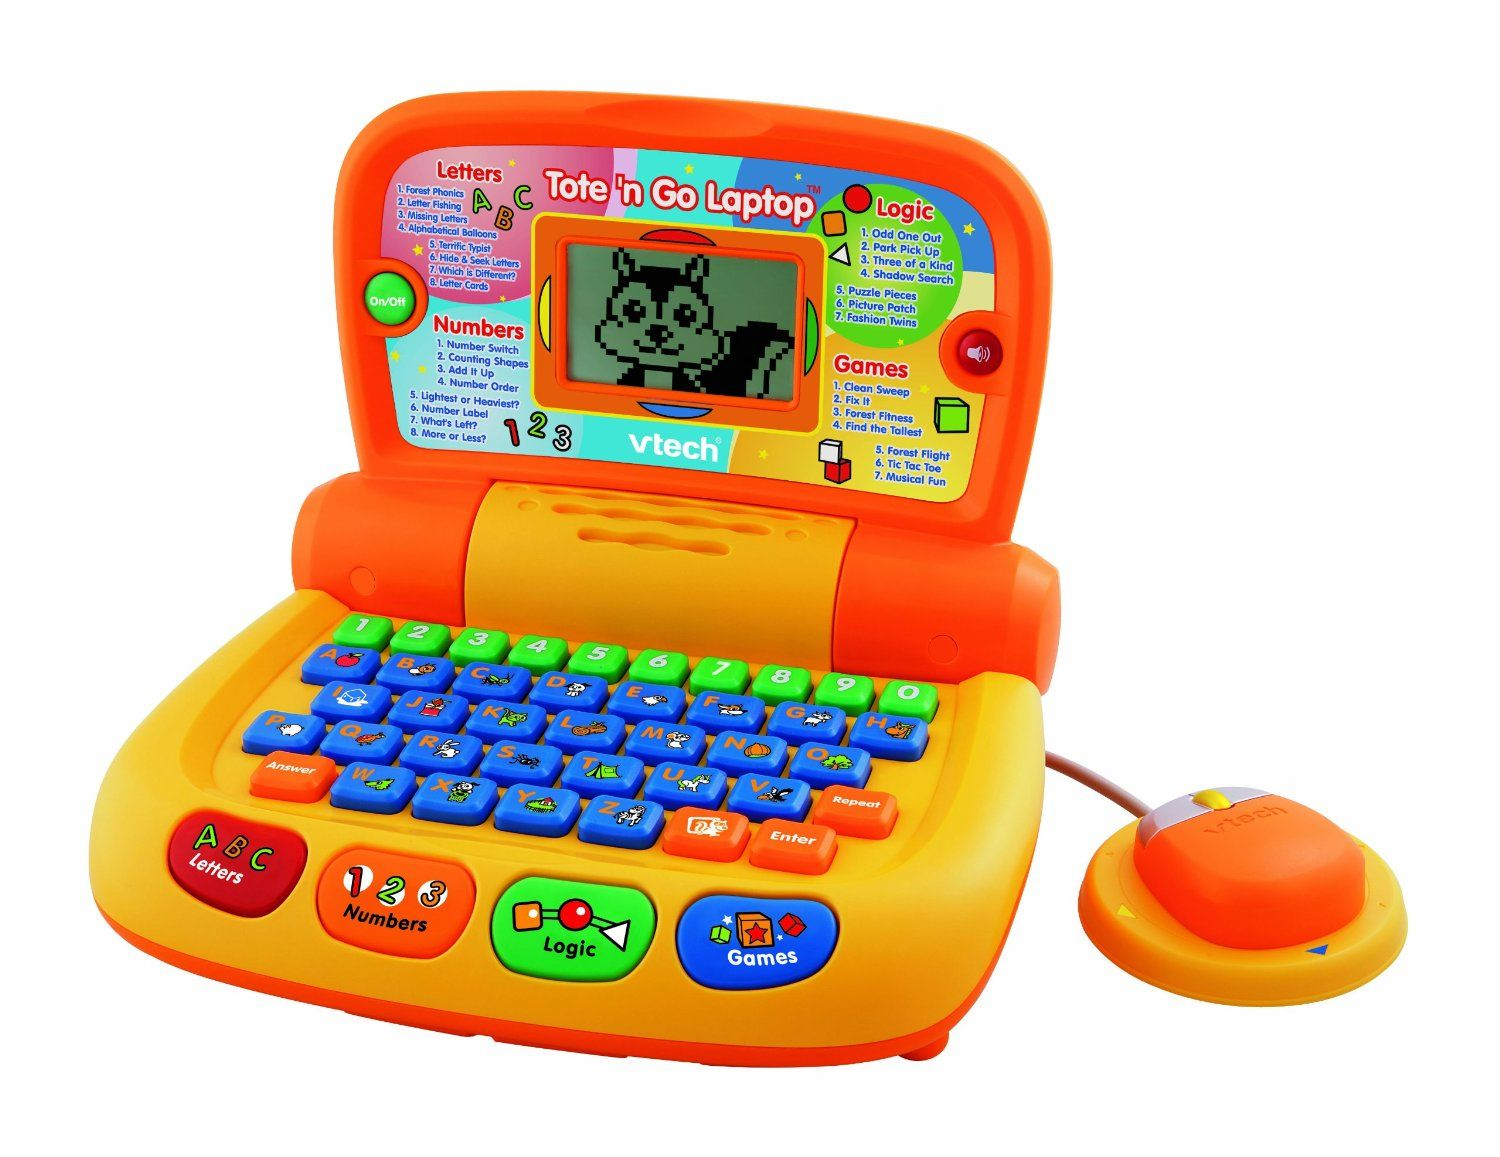 Baby Toys Sale Vtech Breach Exposed Photos Of Kids Chat Logs Celebrity